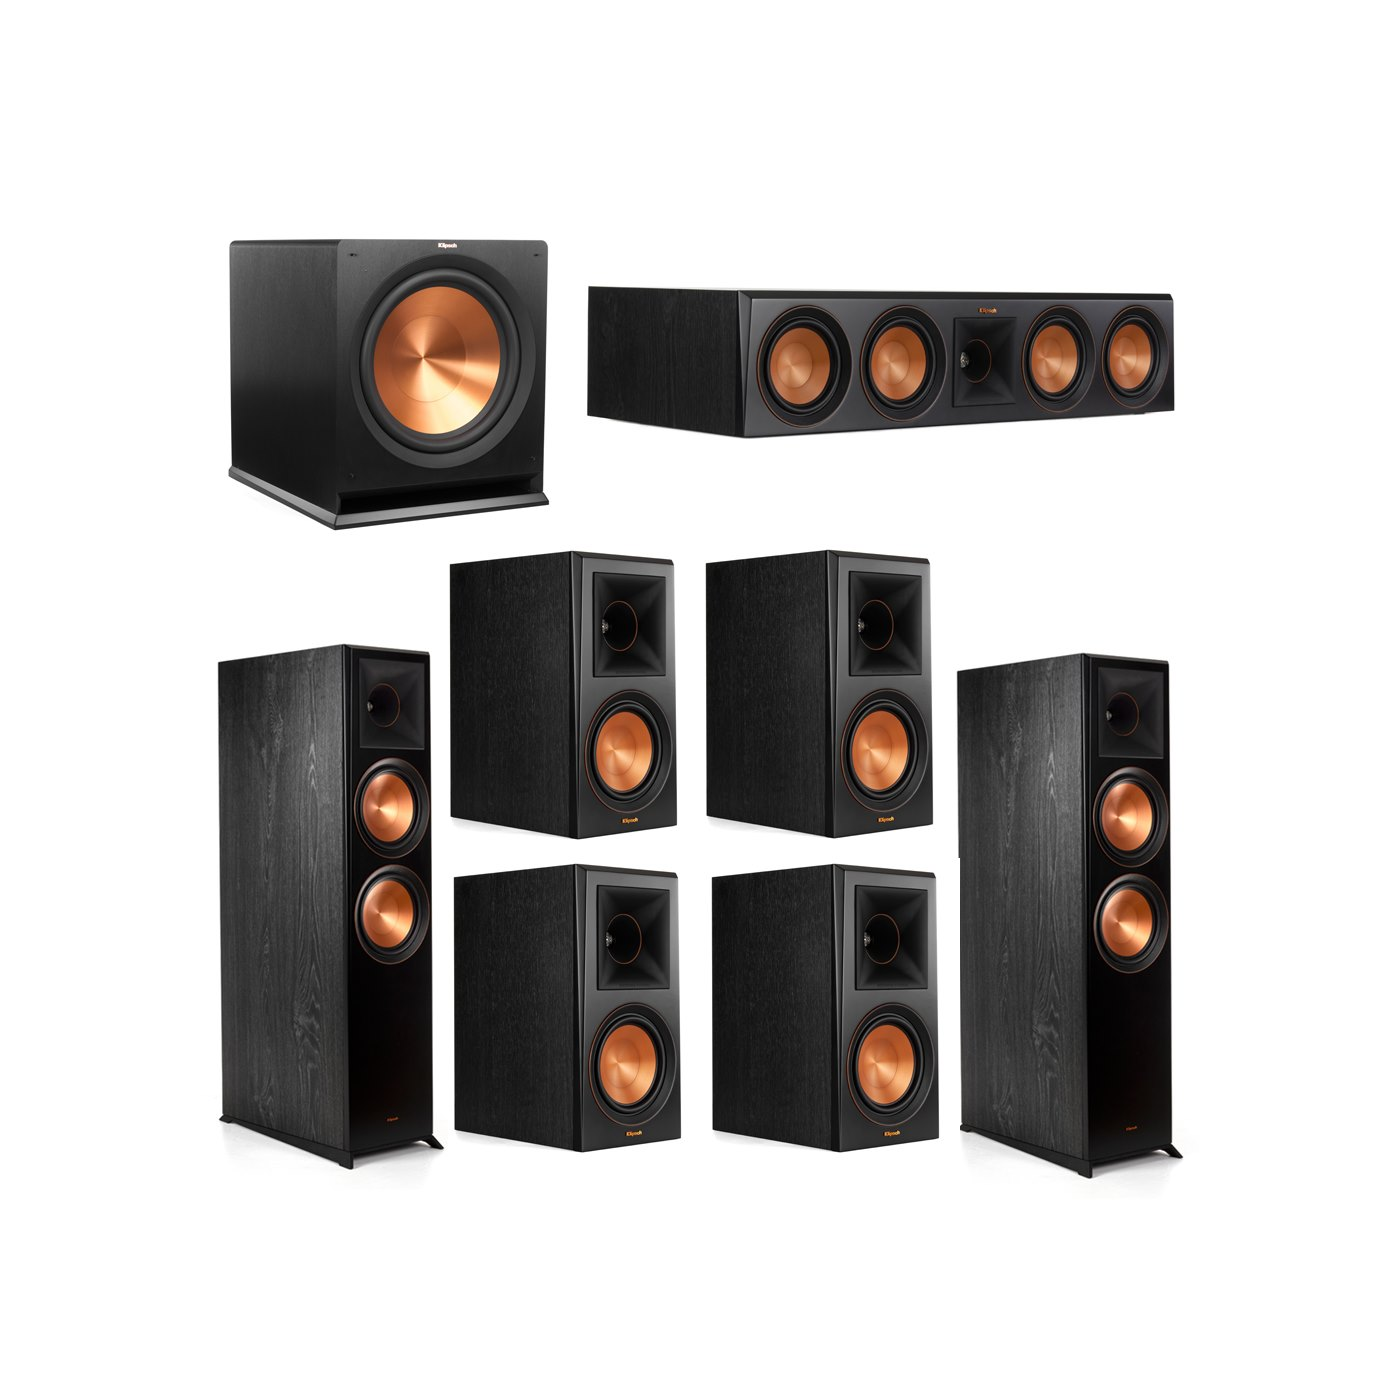 Klipsch 7.1.2 System - 2 RP-8060FA Dolby Atmos Speakers, 1 RP-504C, 4 RP-600M Speakers, 1 R-115SW